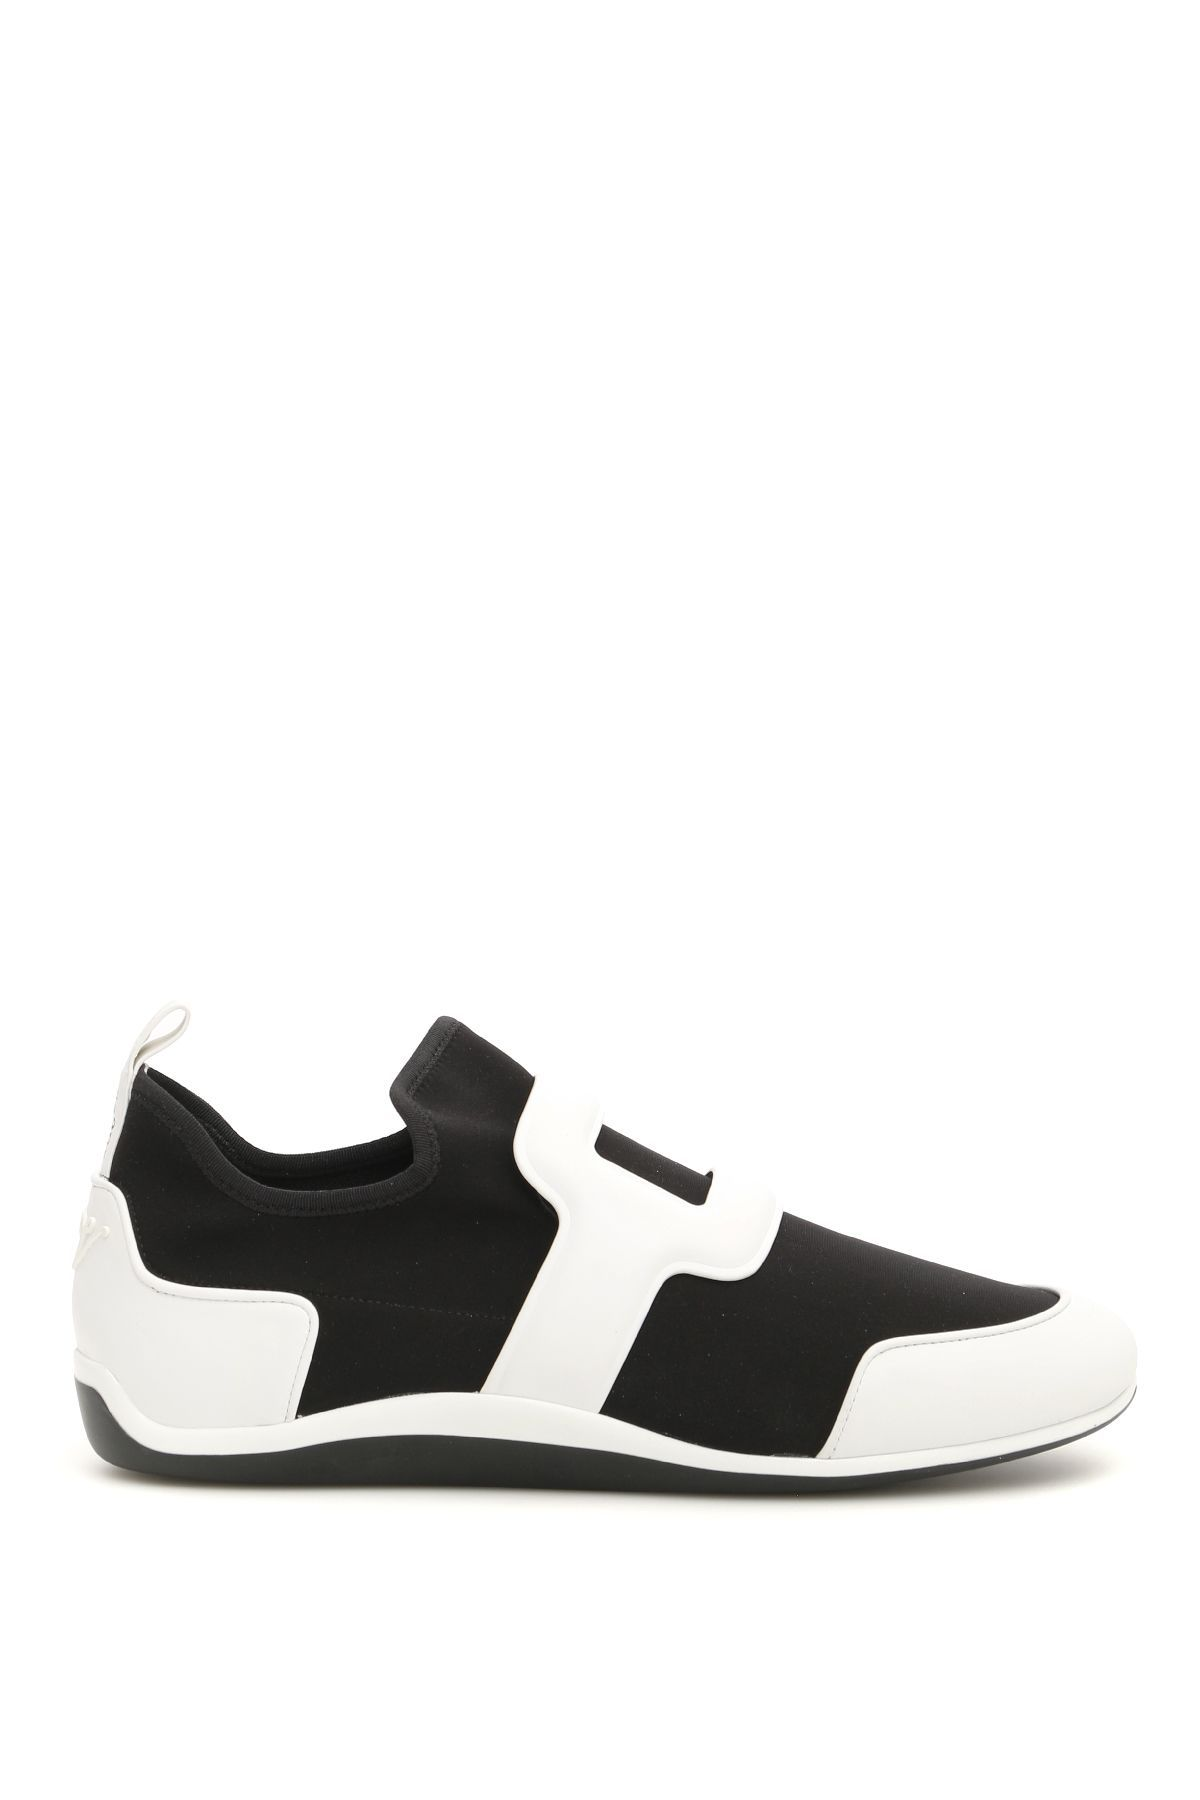 Roger Vivier Sporty Viv Sneakers (With